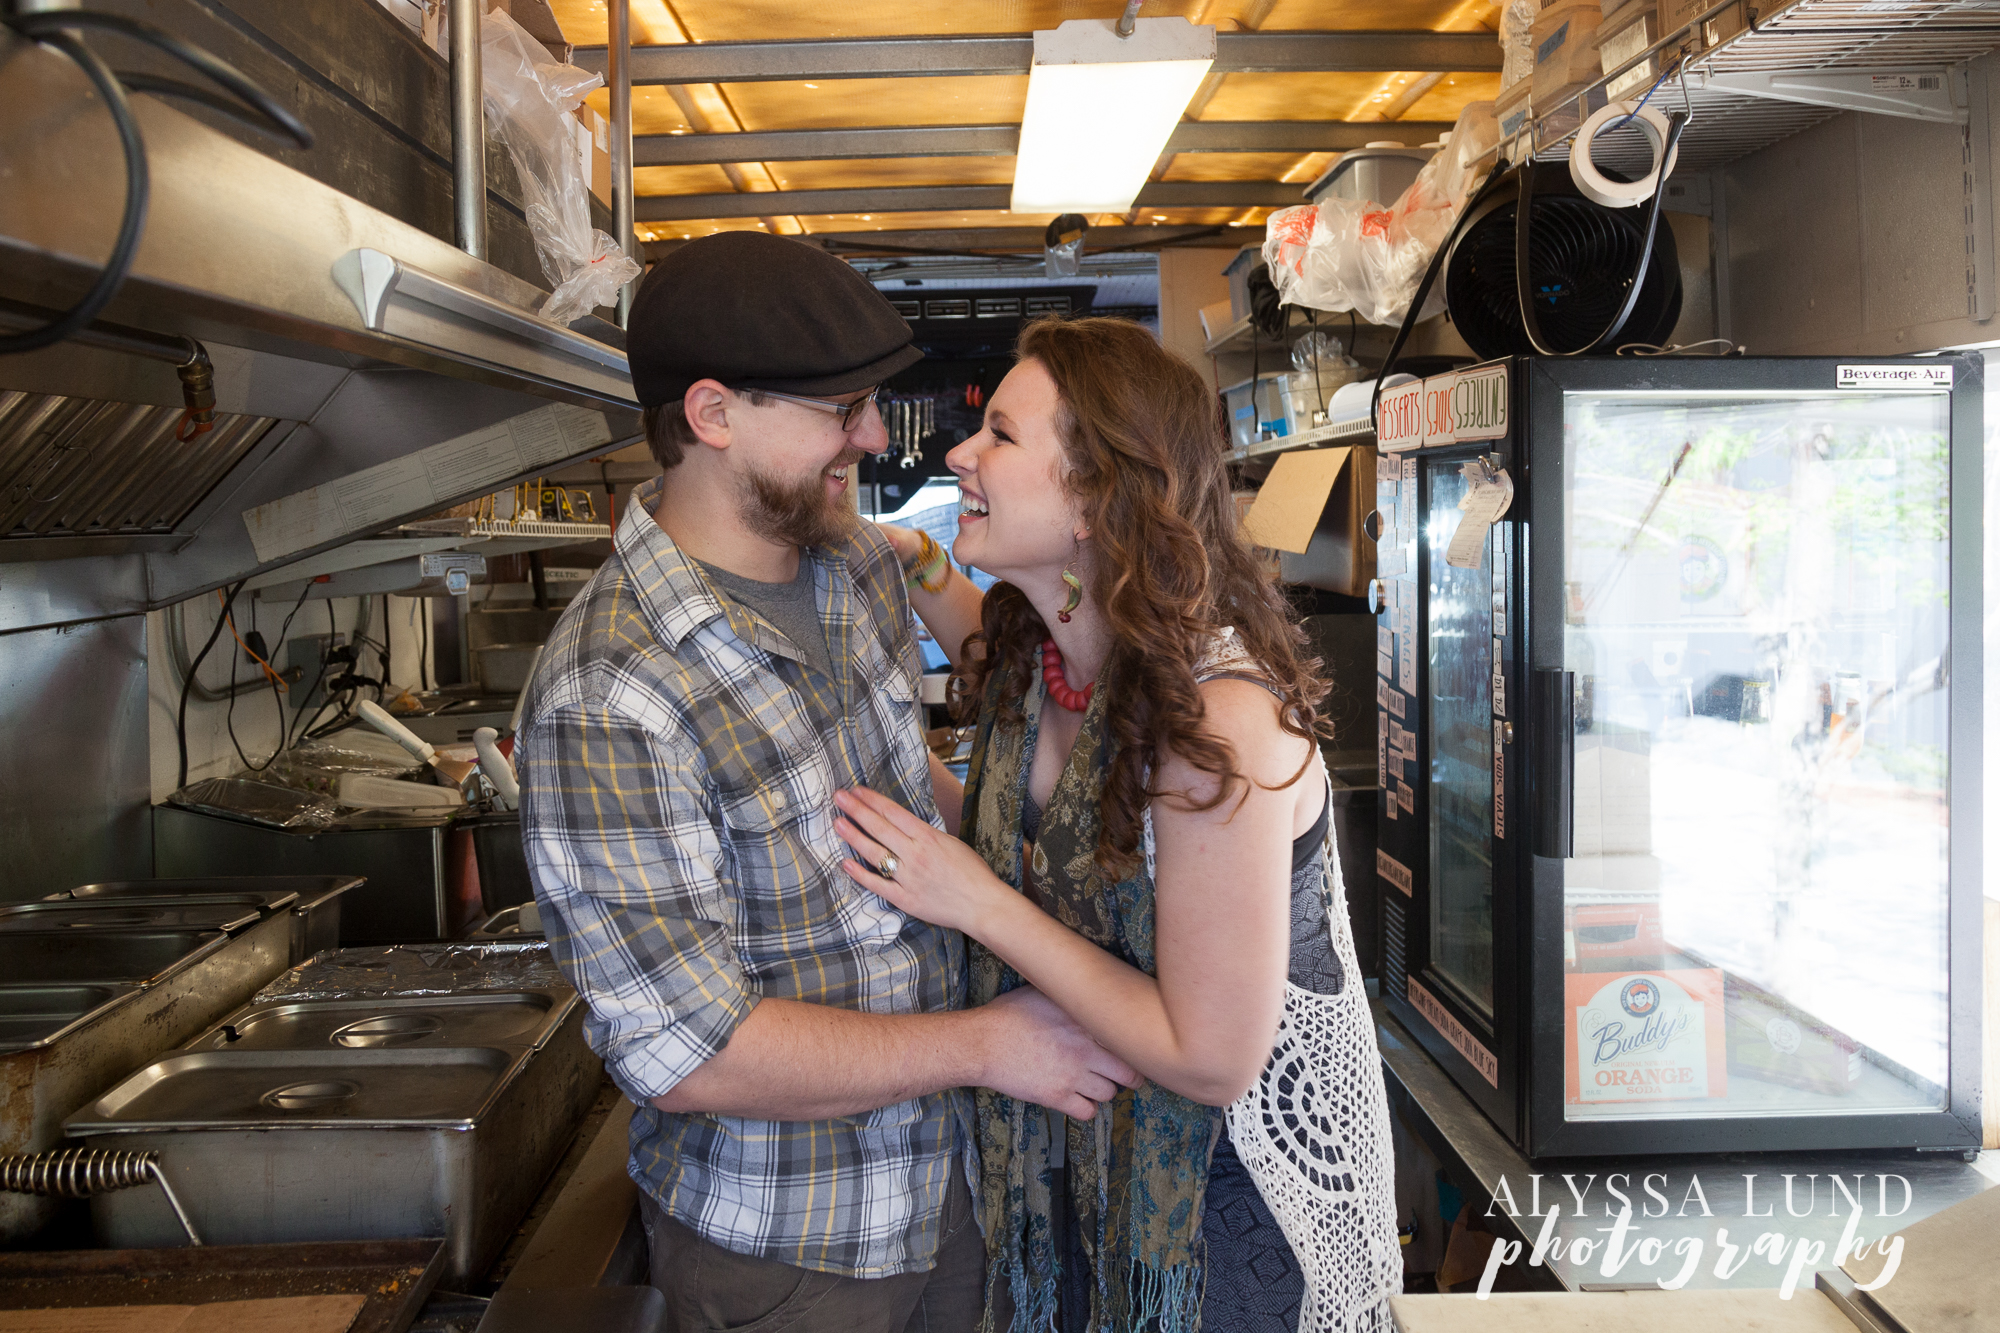 Minneapolis Couple Photography by Alyssa Lund Photography